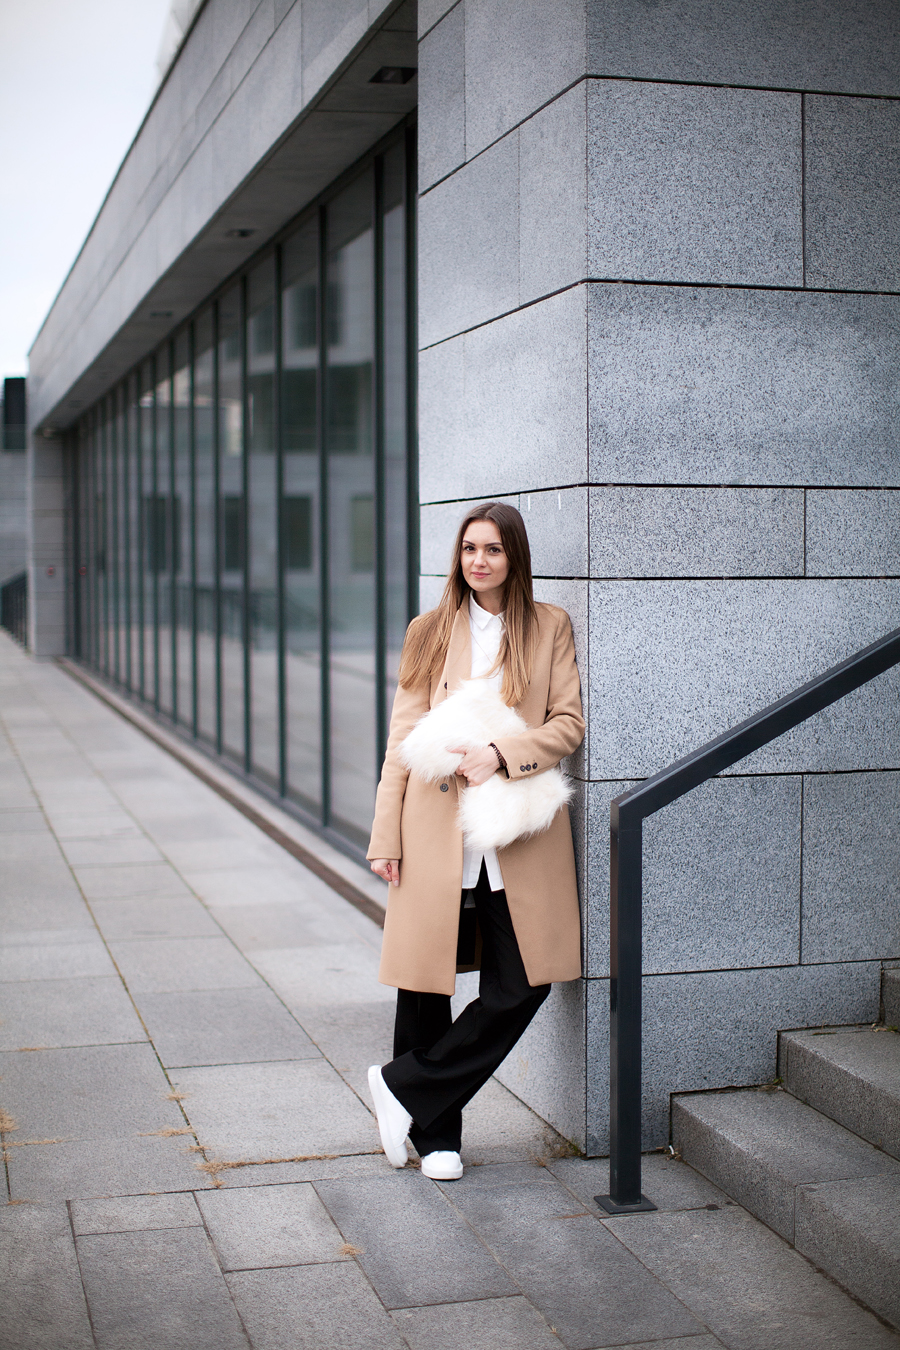 camel-coat-white-sneakers-look-street-style-outfit